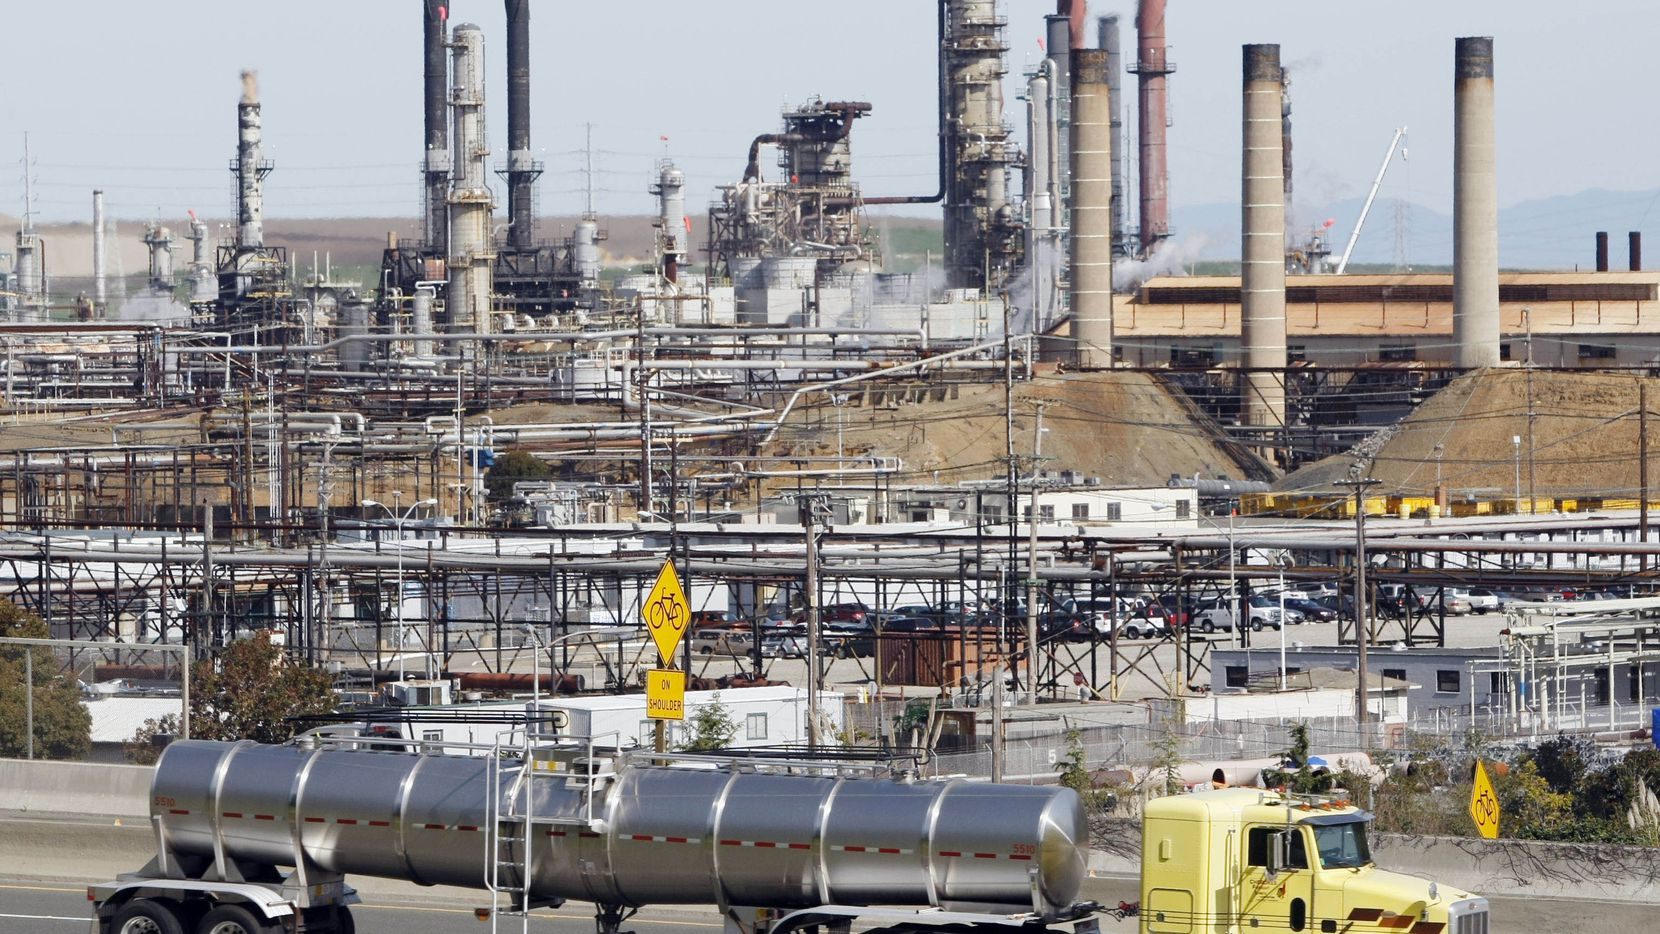 The EPA has announced new rules to reduce toxic air pollution from oil refineries by forcing operators to adopt new technology that better monitors and controls emissions.